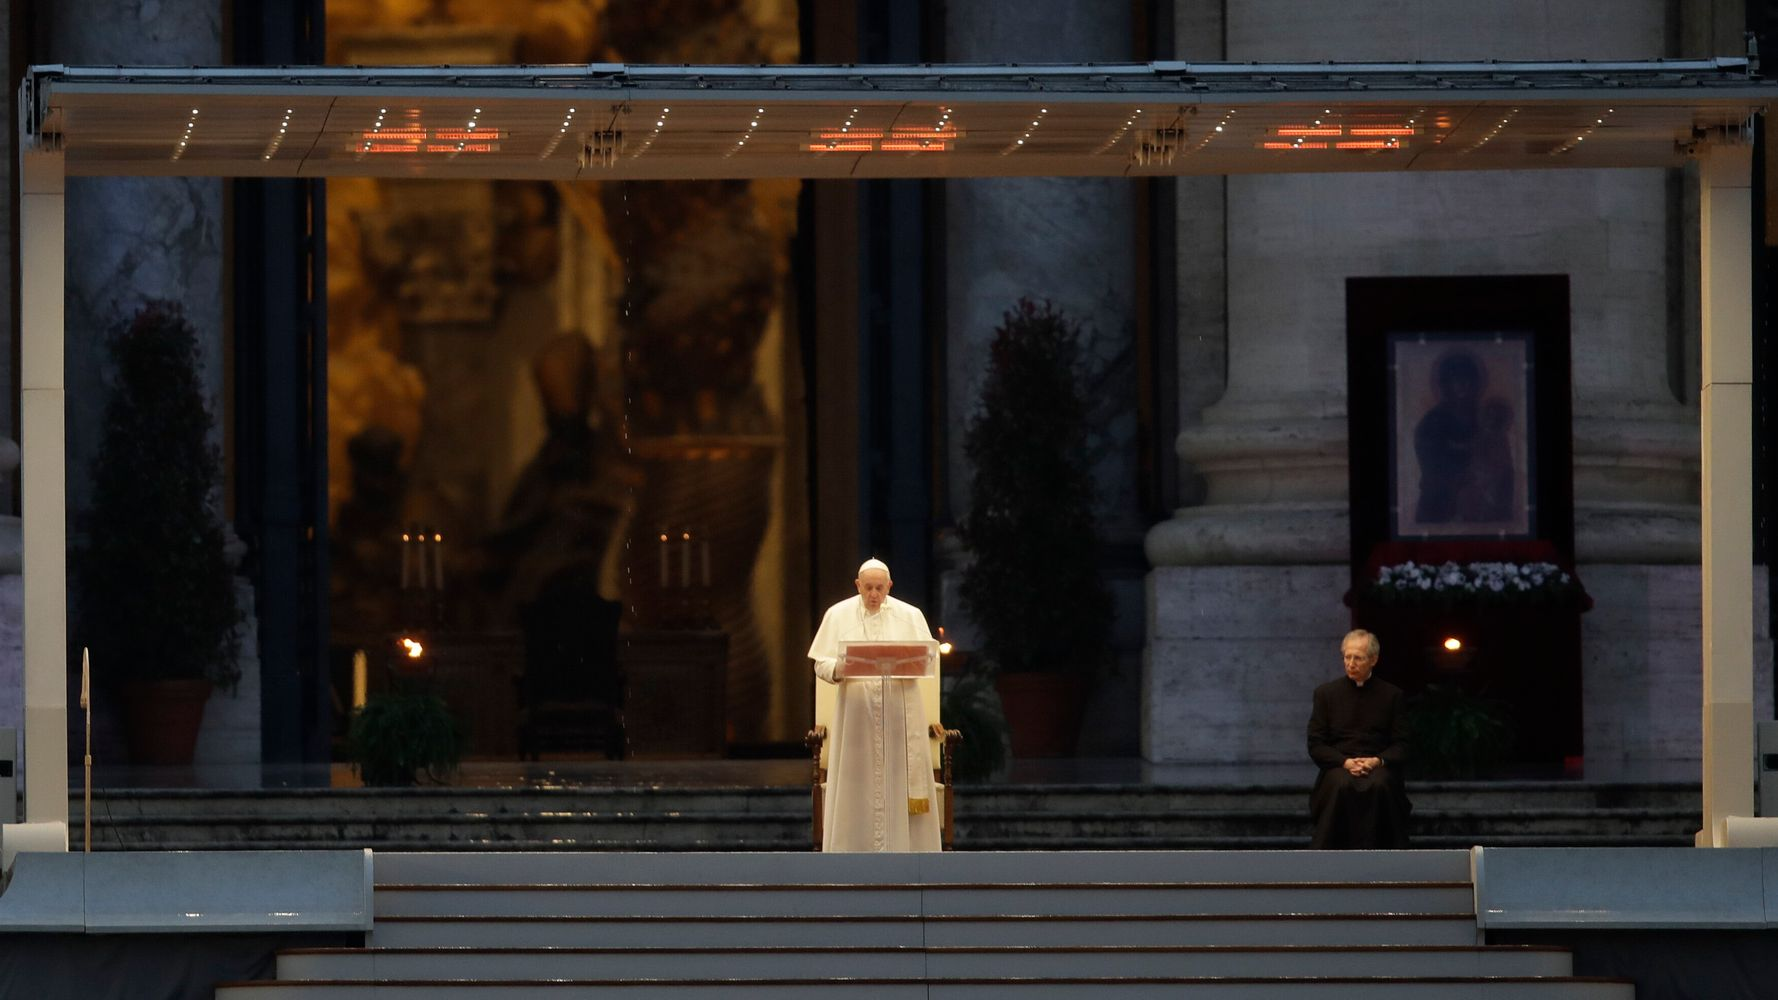 Pope Francis Prays In Empty St. Peter's Square In Hauntingly Moving Images